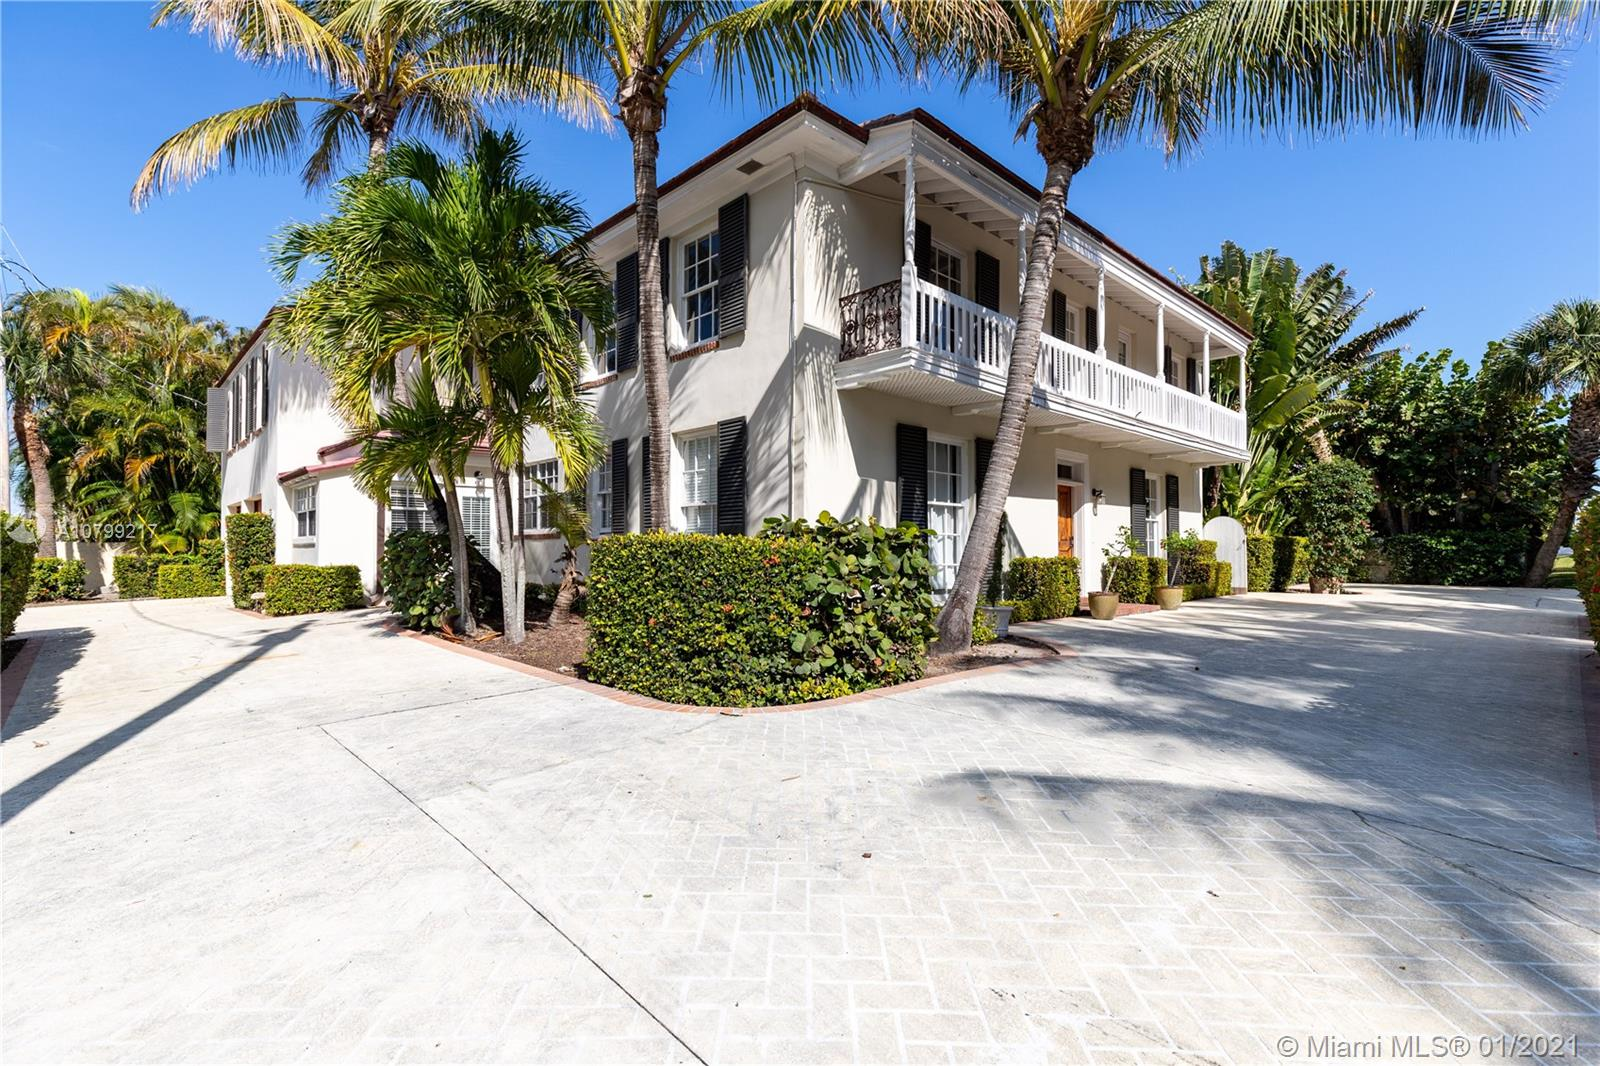 177 Queens Ln, Palm Beach, FL 33480